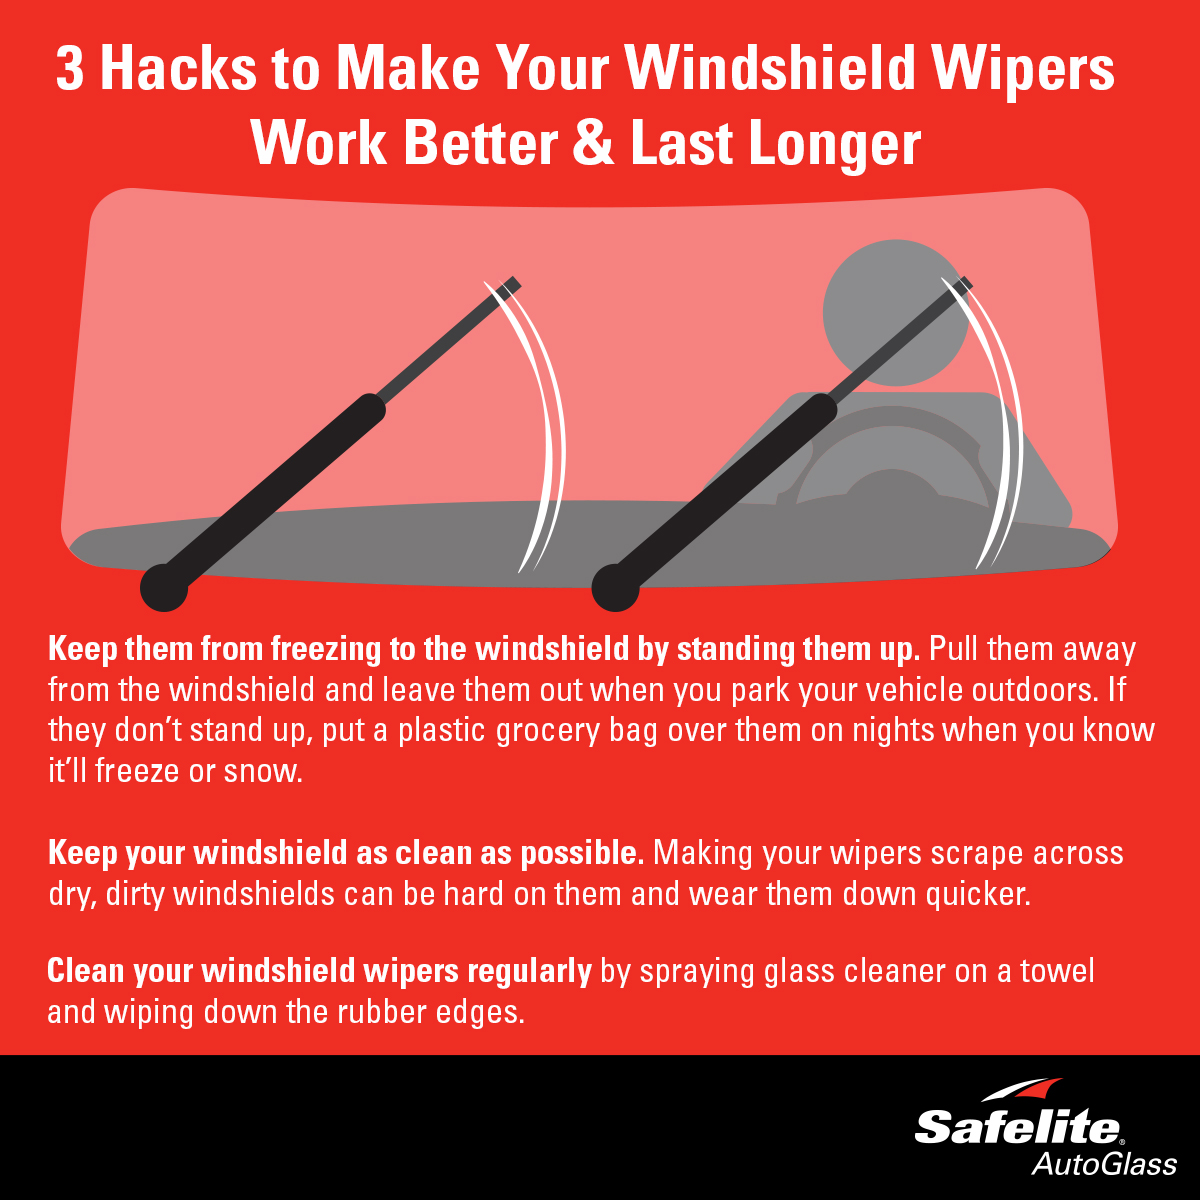 These three tips should help you to care for your windshield wipers.